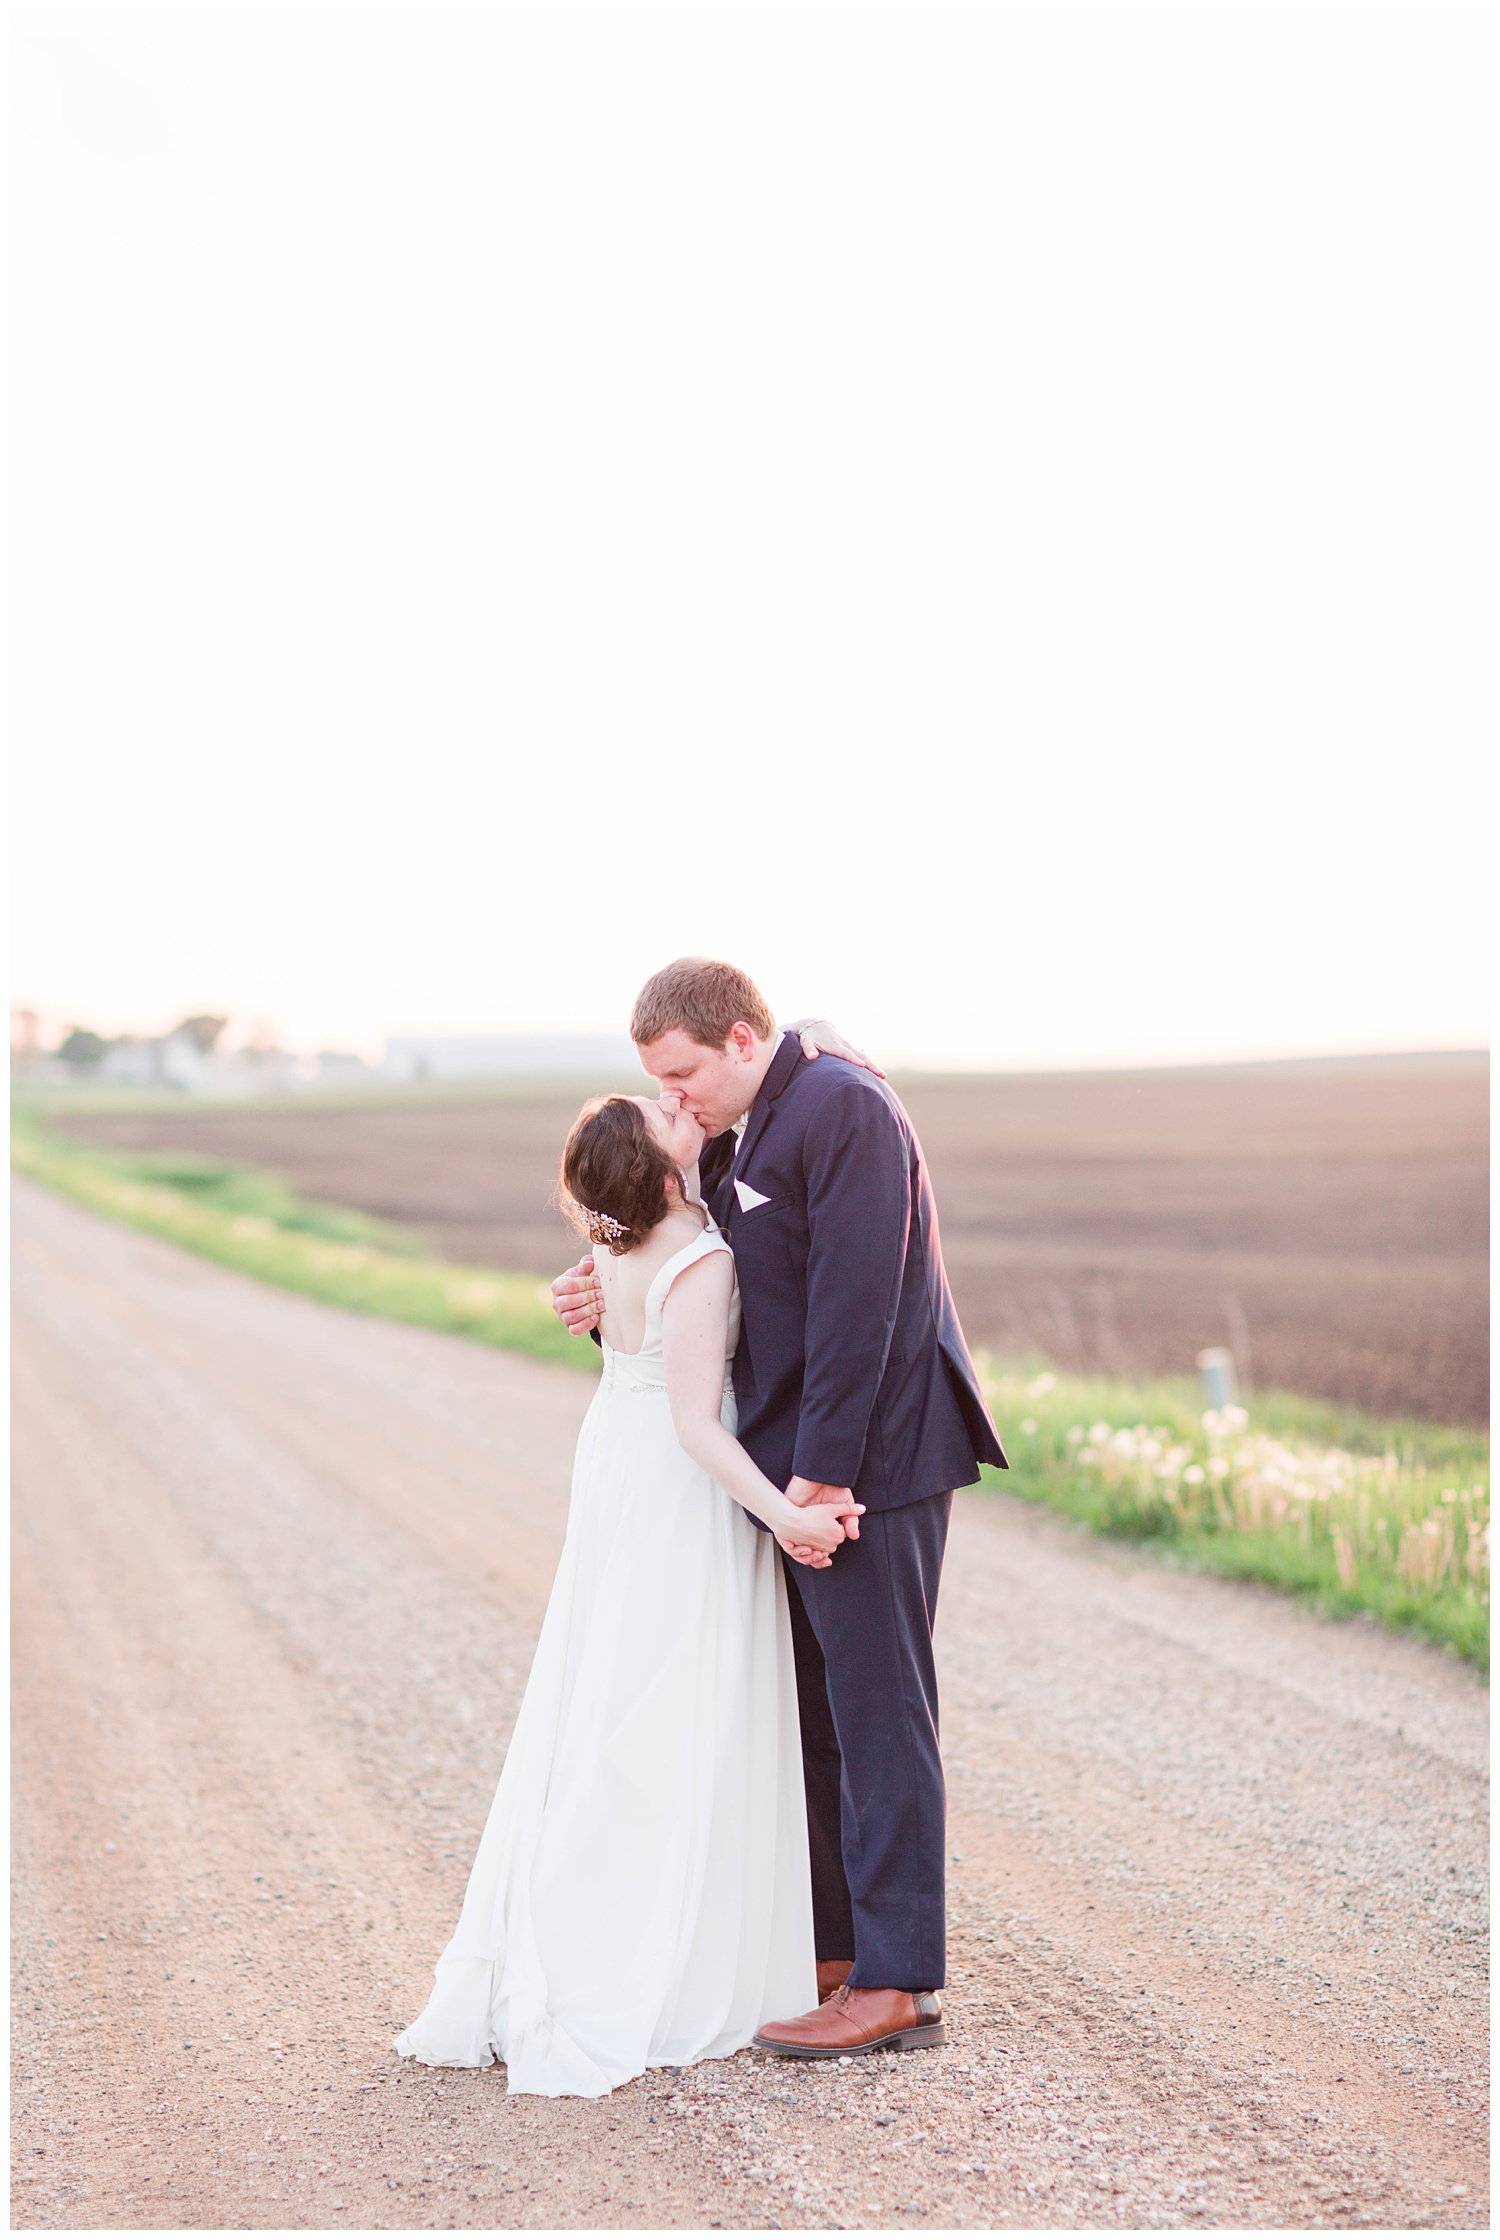 Bride and groom kiss at sunset on a country road in Algona Iowa | CB Studio